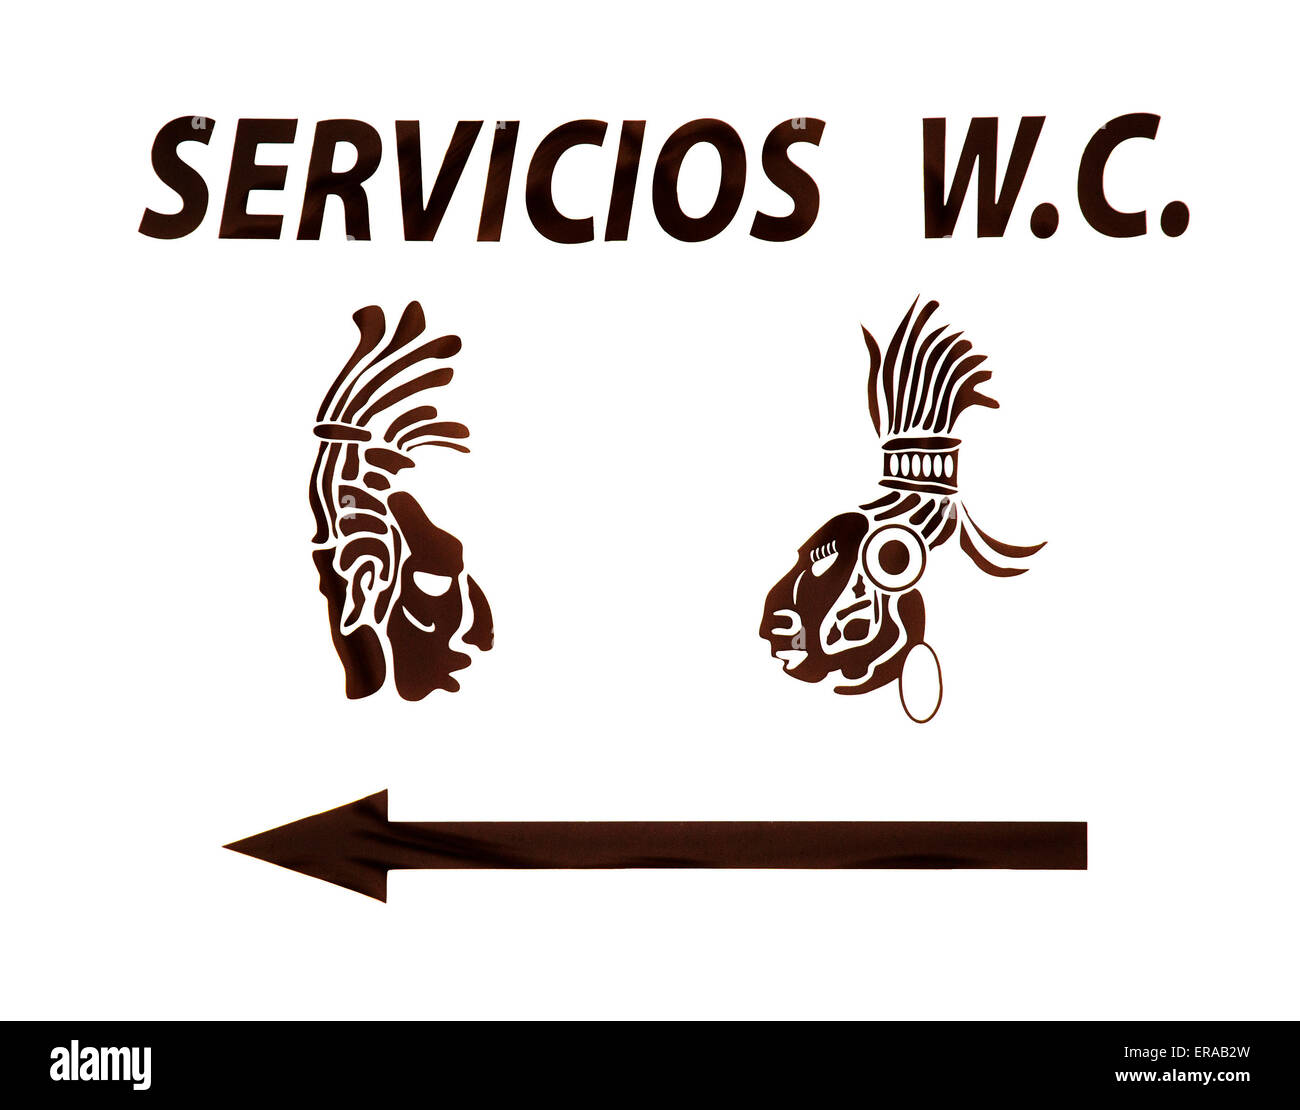 Washroom sign in Mexico - Stock Image